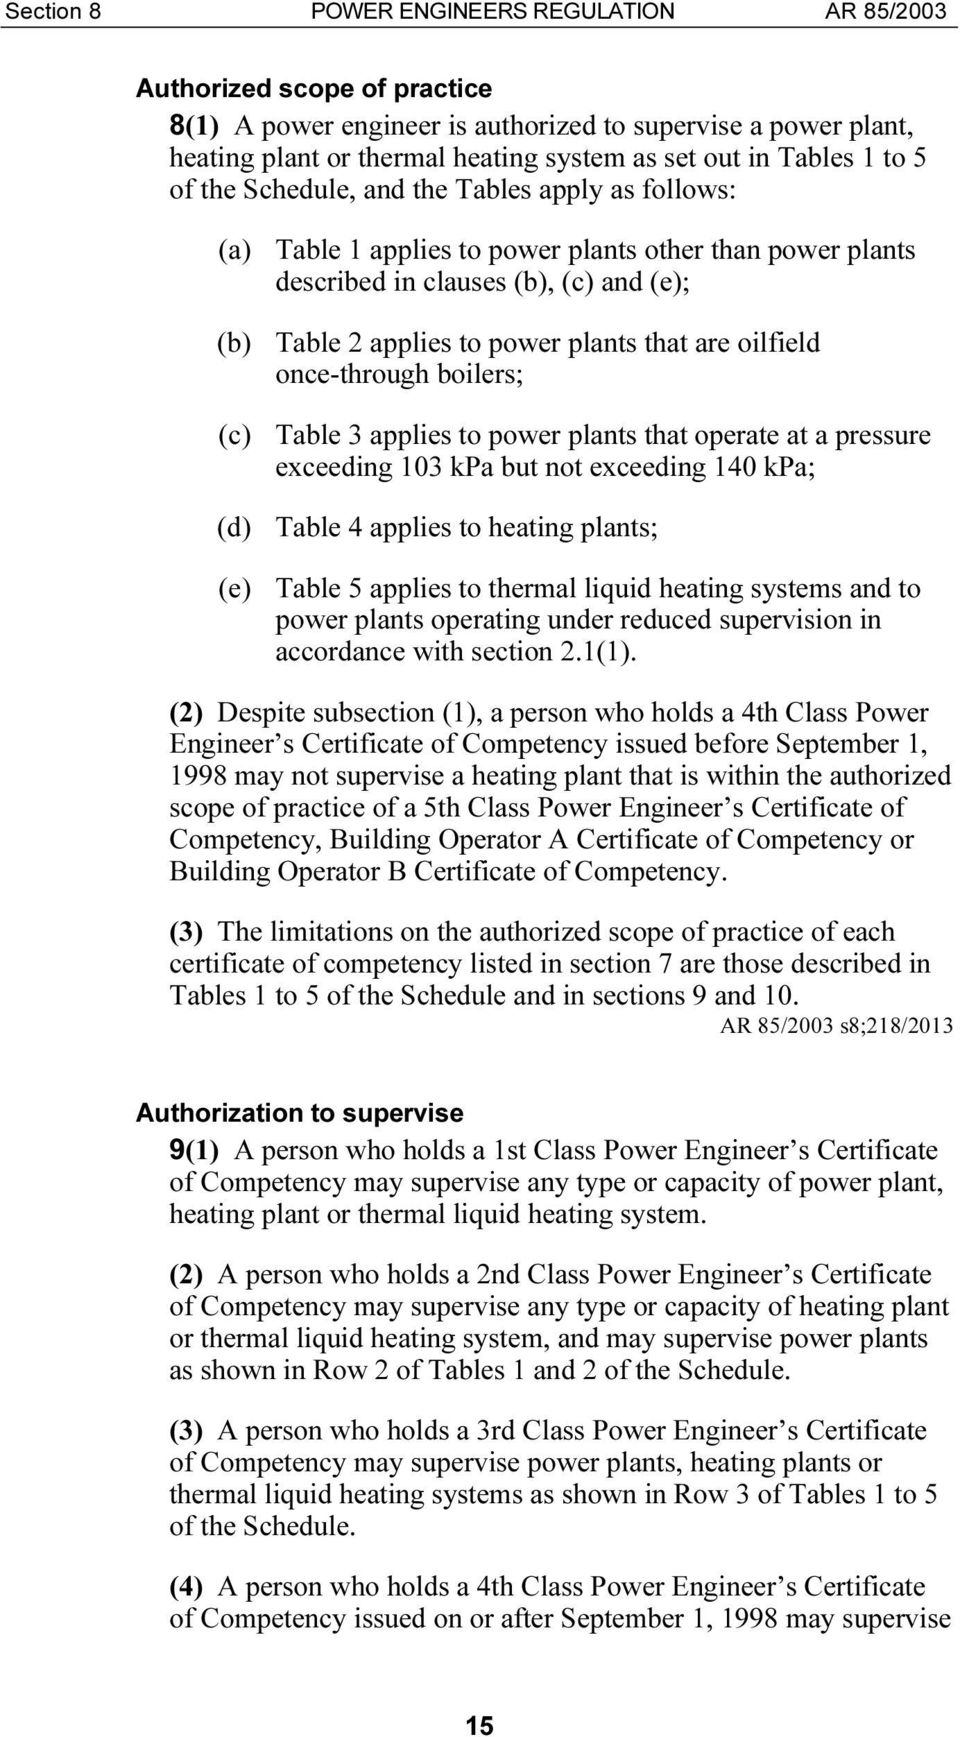 oilfield once-through boilers; (c) Table 3 applies to power plants that operate at a pressure exceeding 103 kpa but not exceeding 140 kpa; (d) Table 4 applies to heating plants; (e) Table 5 applies